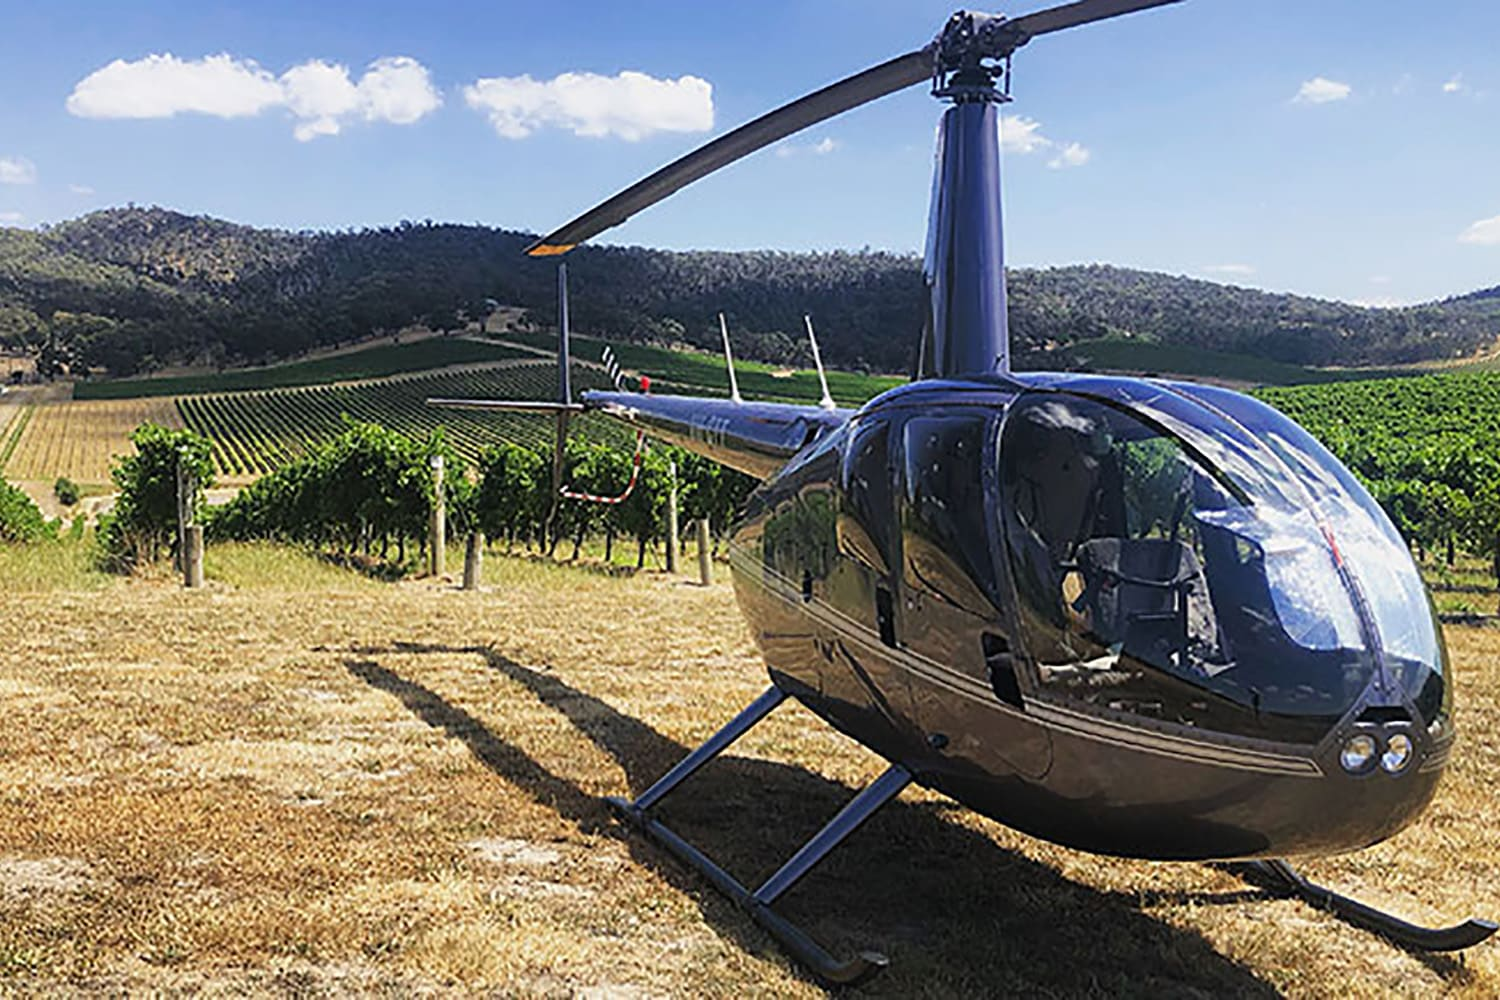 Helicopter Flight to De Bortoli with Lunch For 2